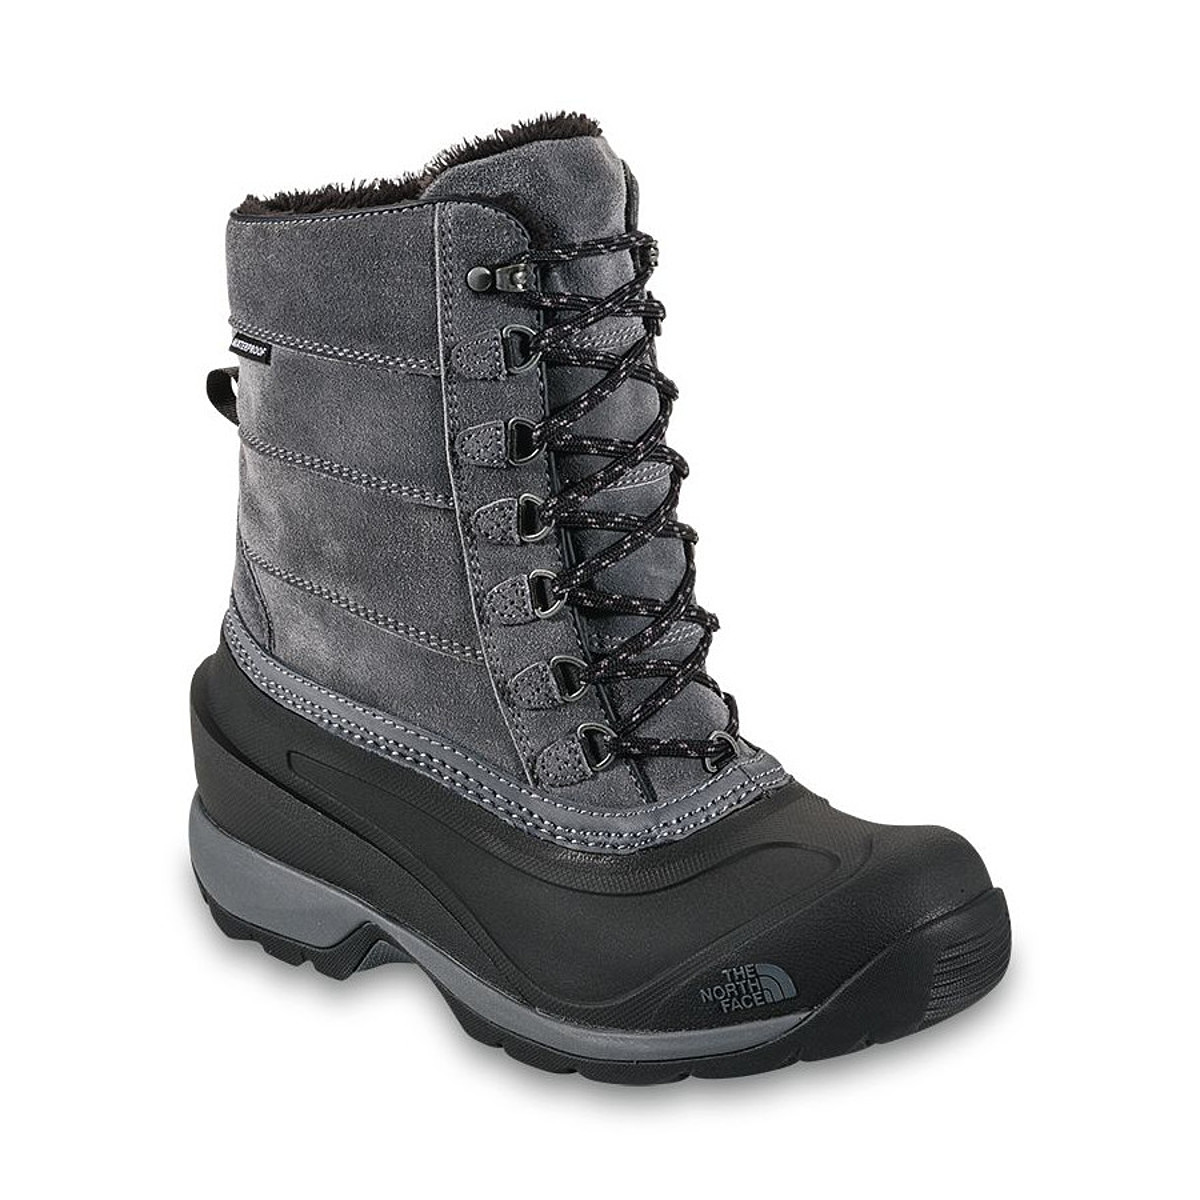 The North Face Chilkat III Removable